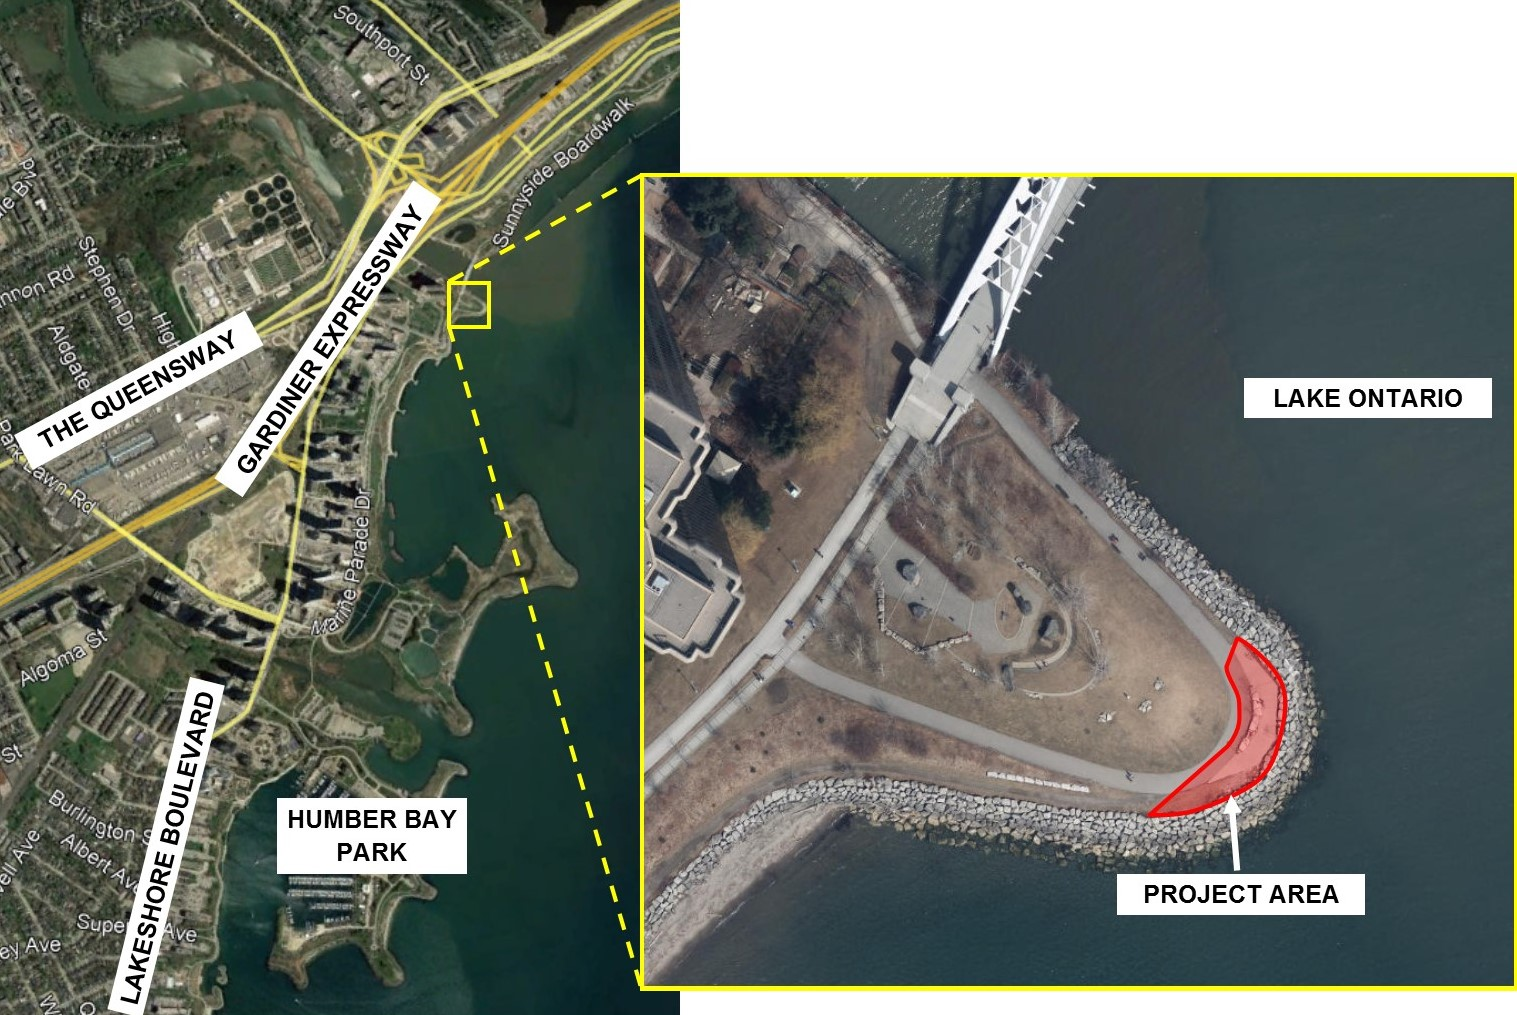 Map of the Humber Bay Shores Trail Maintenance project location and work area. Source: TRCA, 2019.